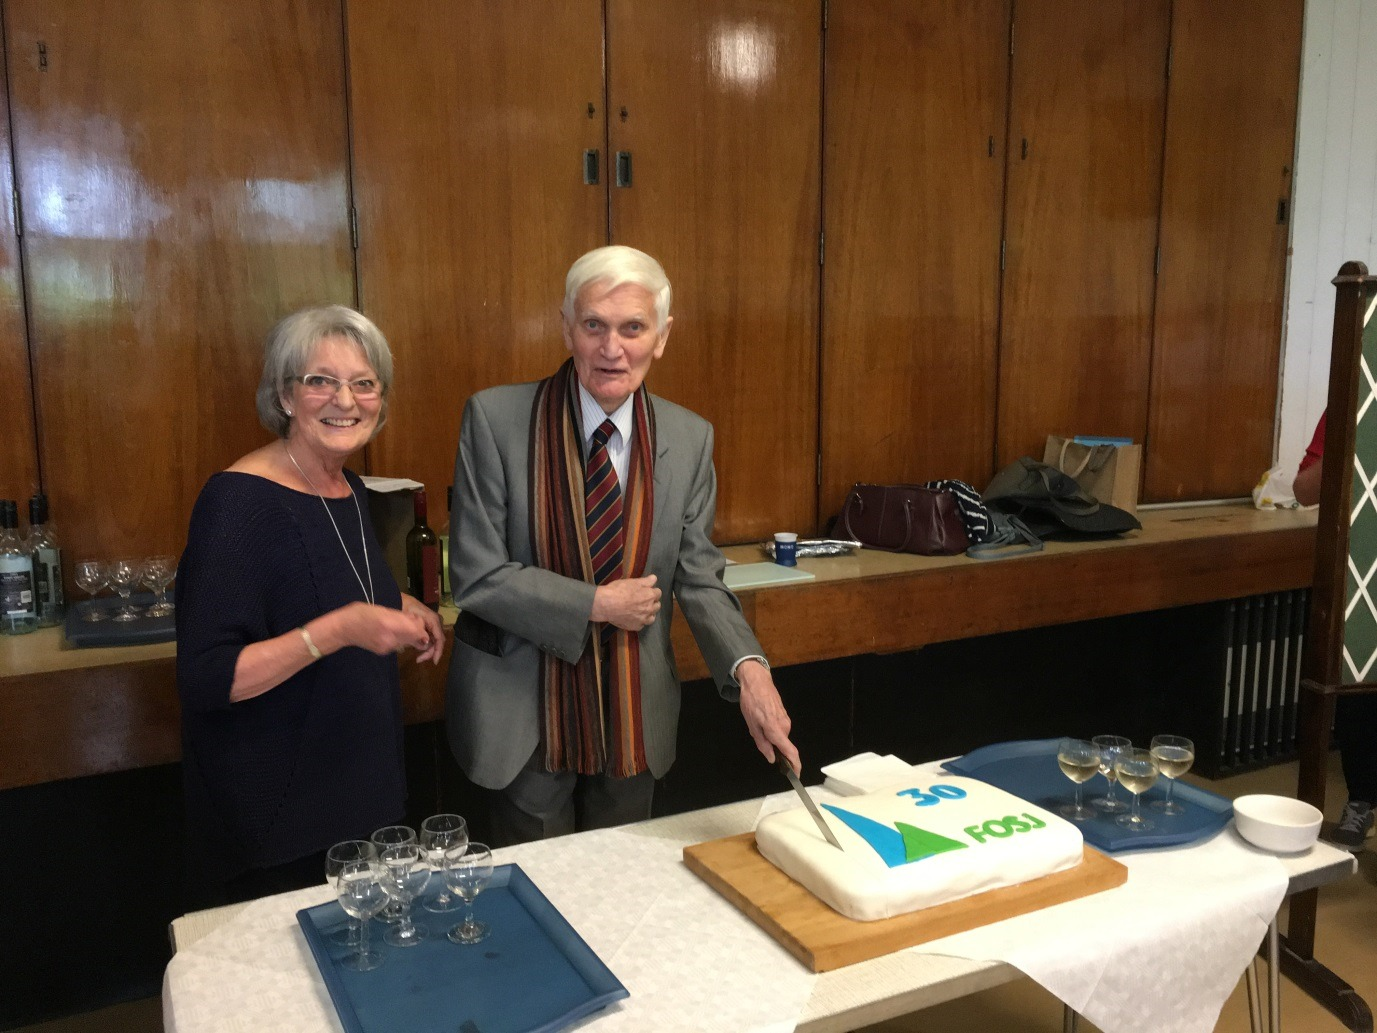 Reverend John Green cuts the birthday cake beside chairwoman of Friends of St. James' Church, Margaret Wicks